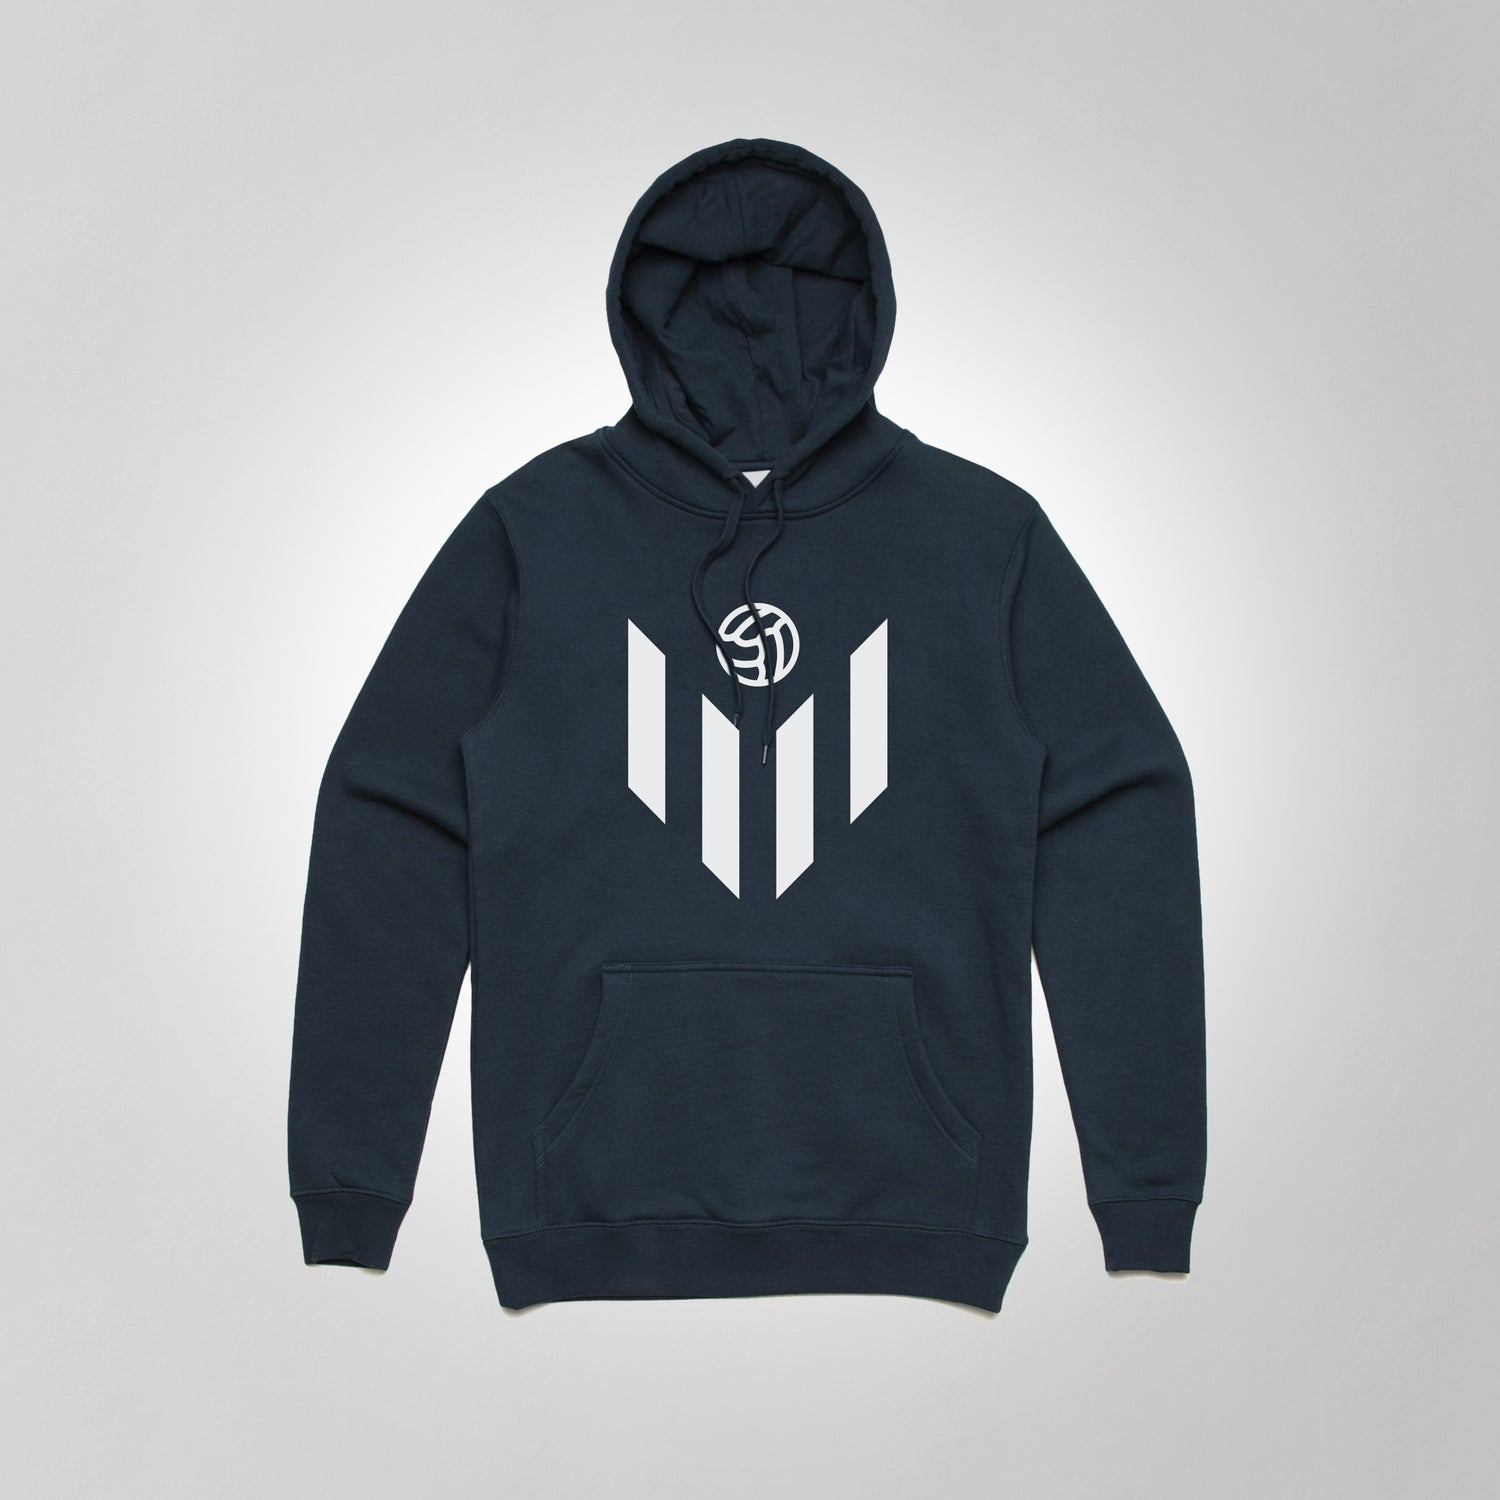 Image of DPRV hoody (XXL sold out)